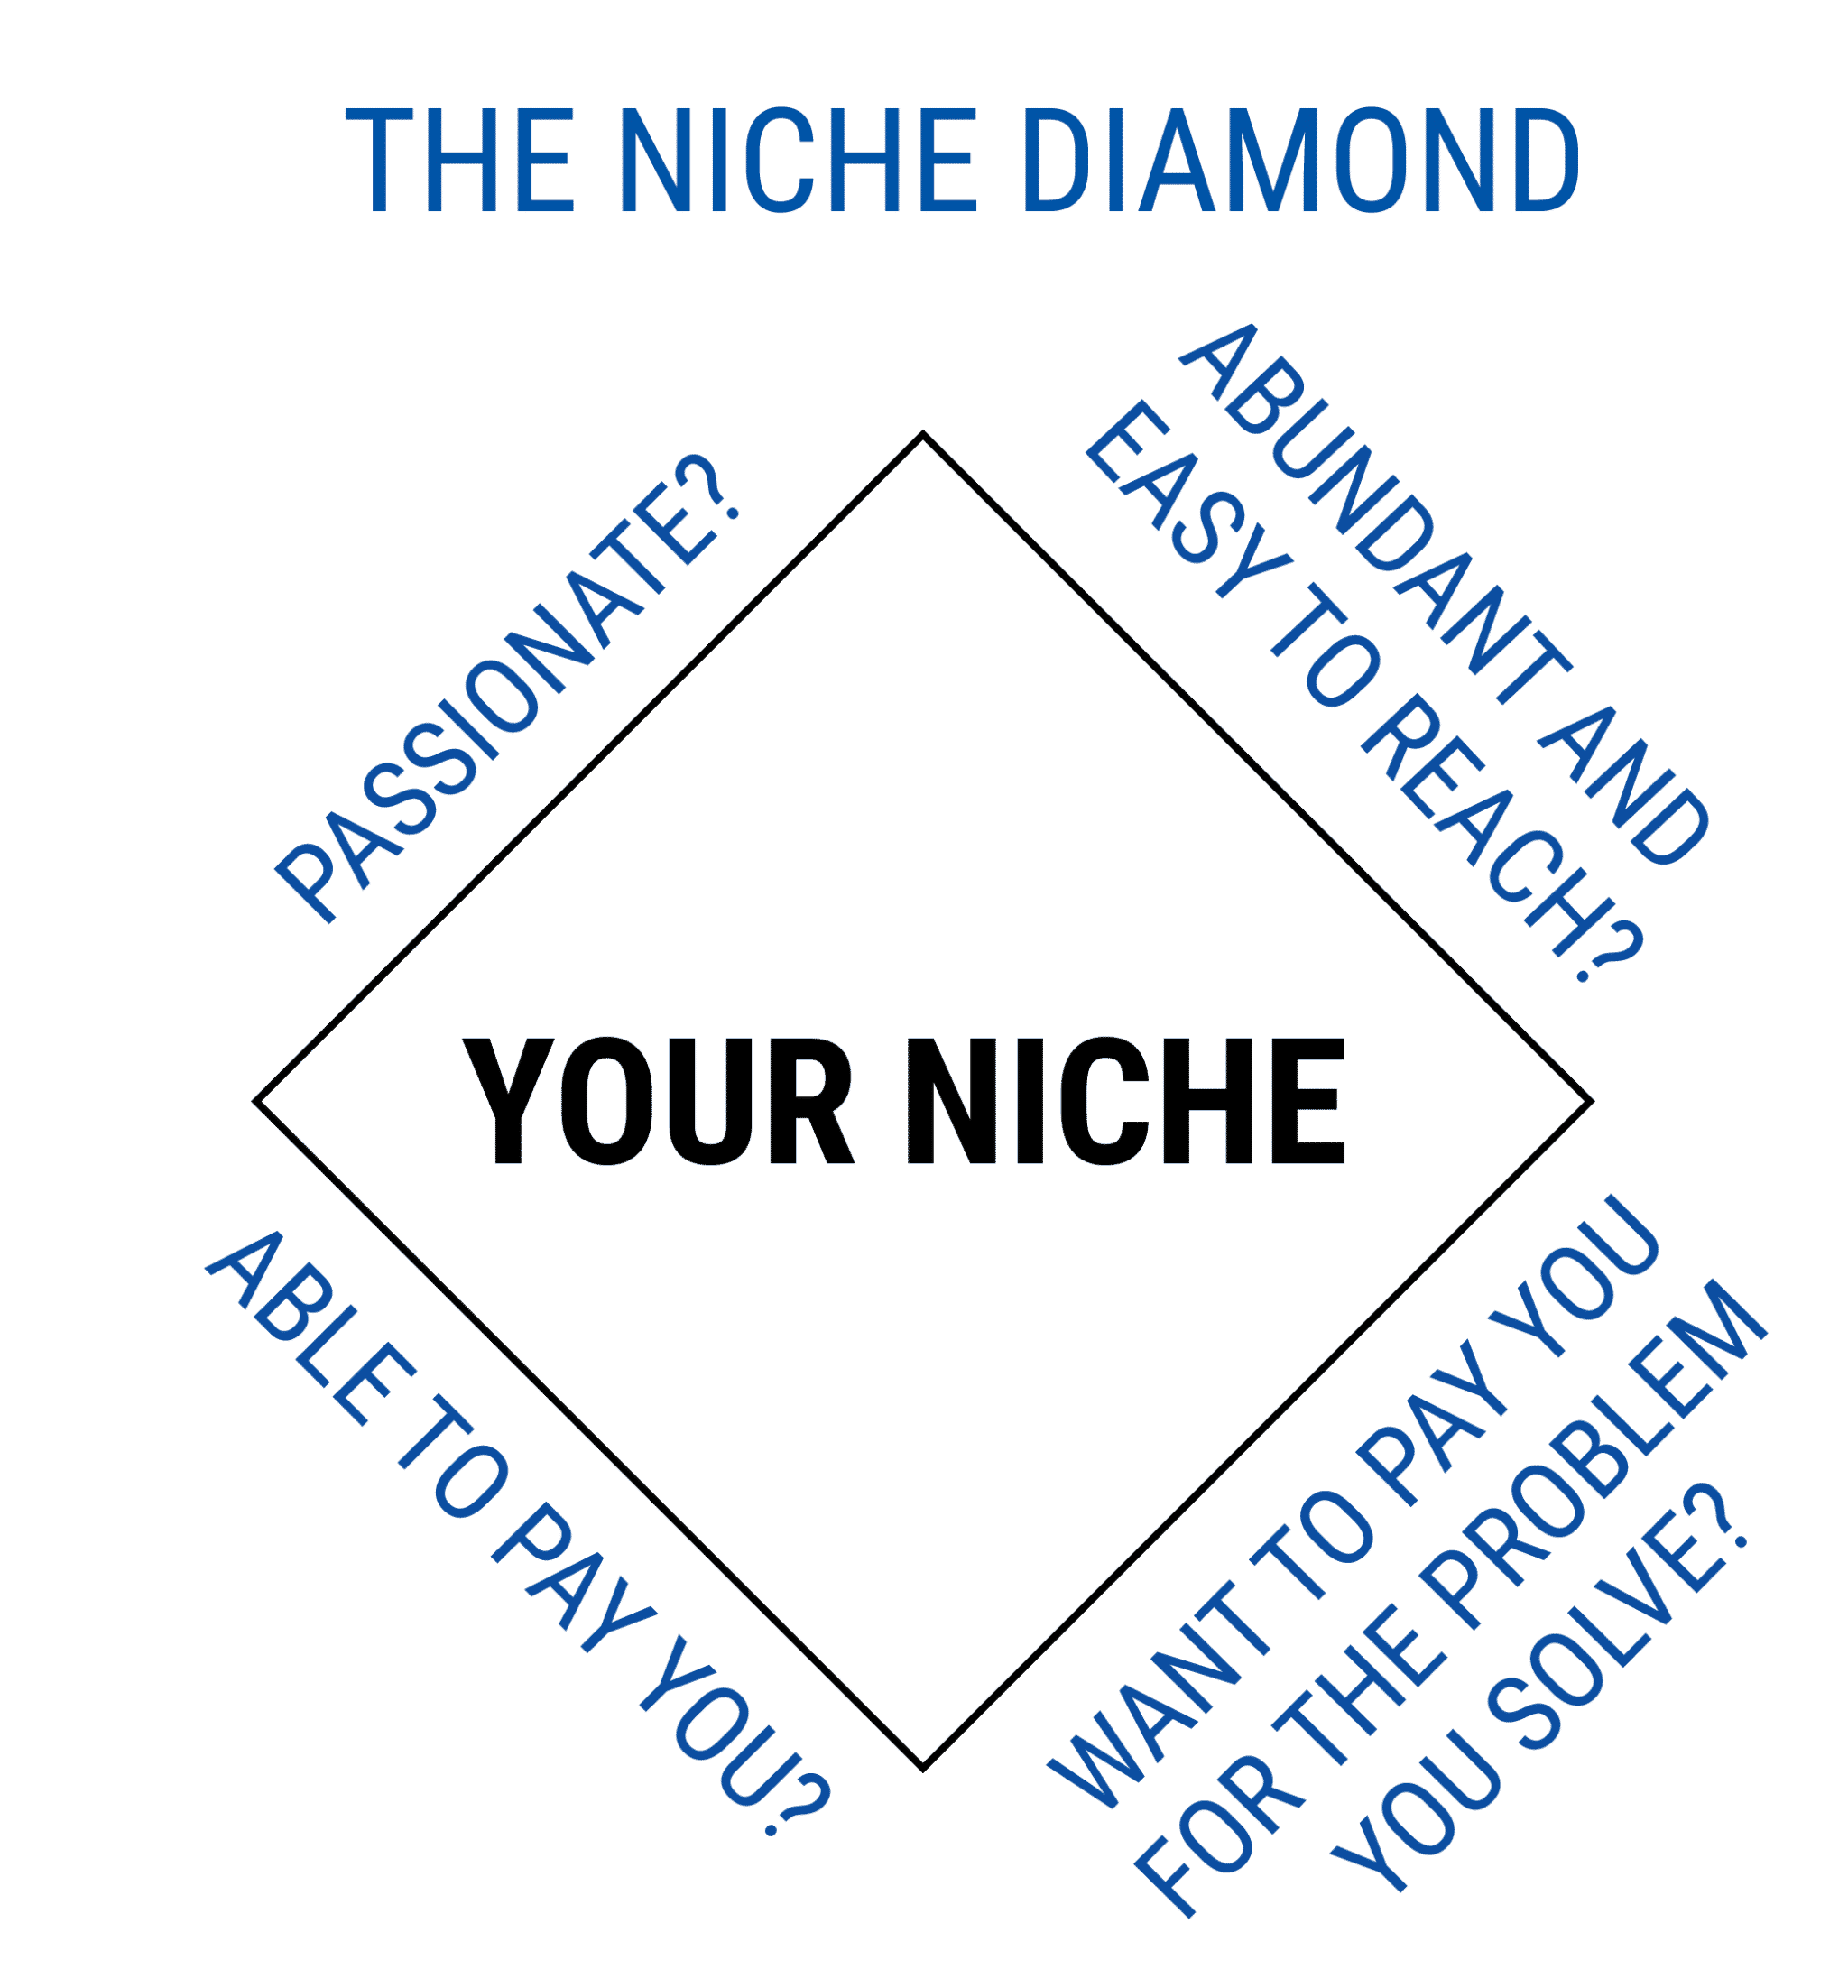 the niche diamond - starting a coaching business while working full-time